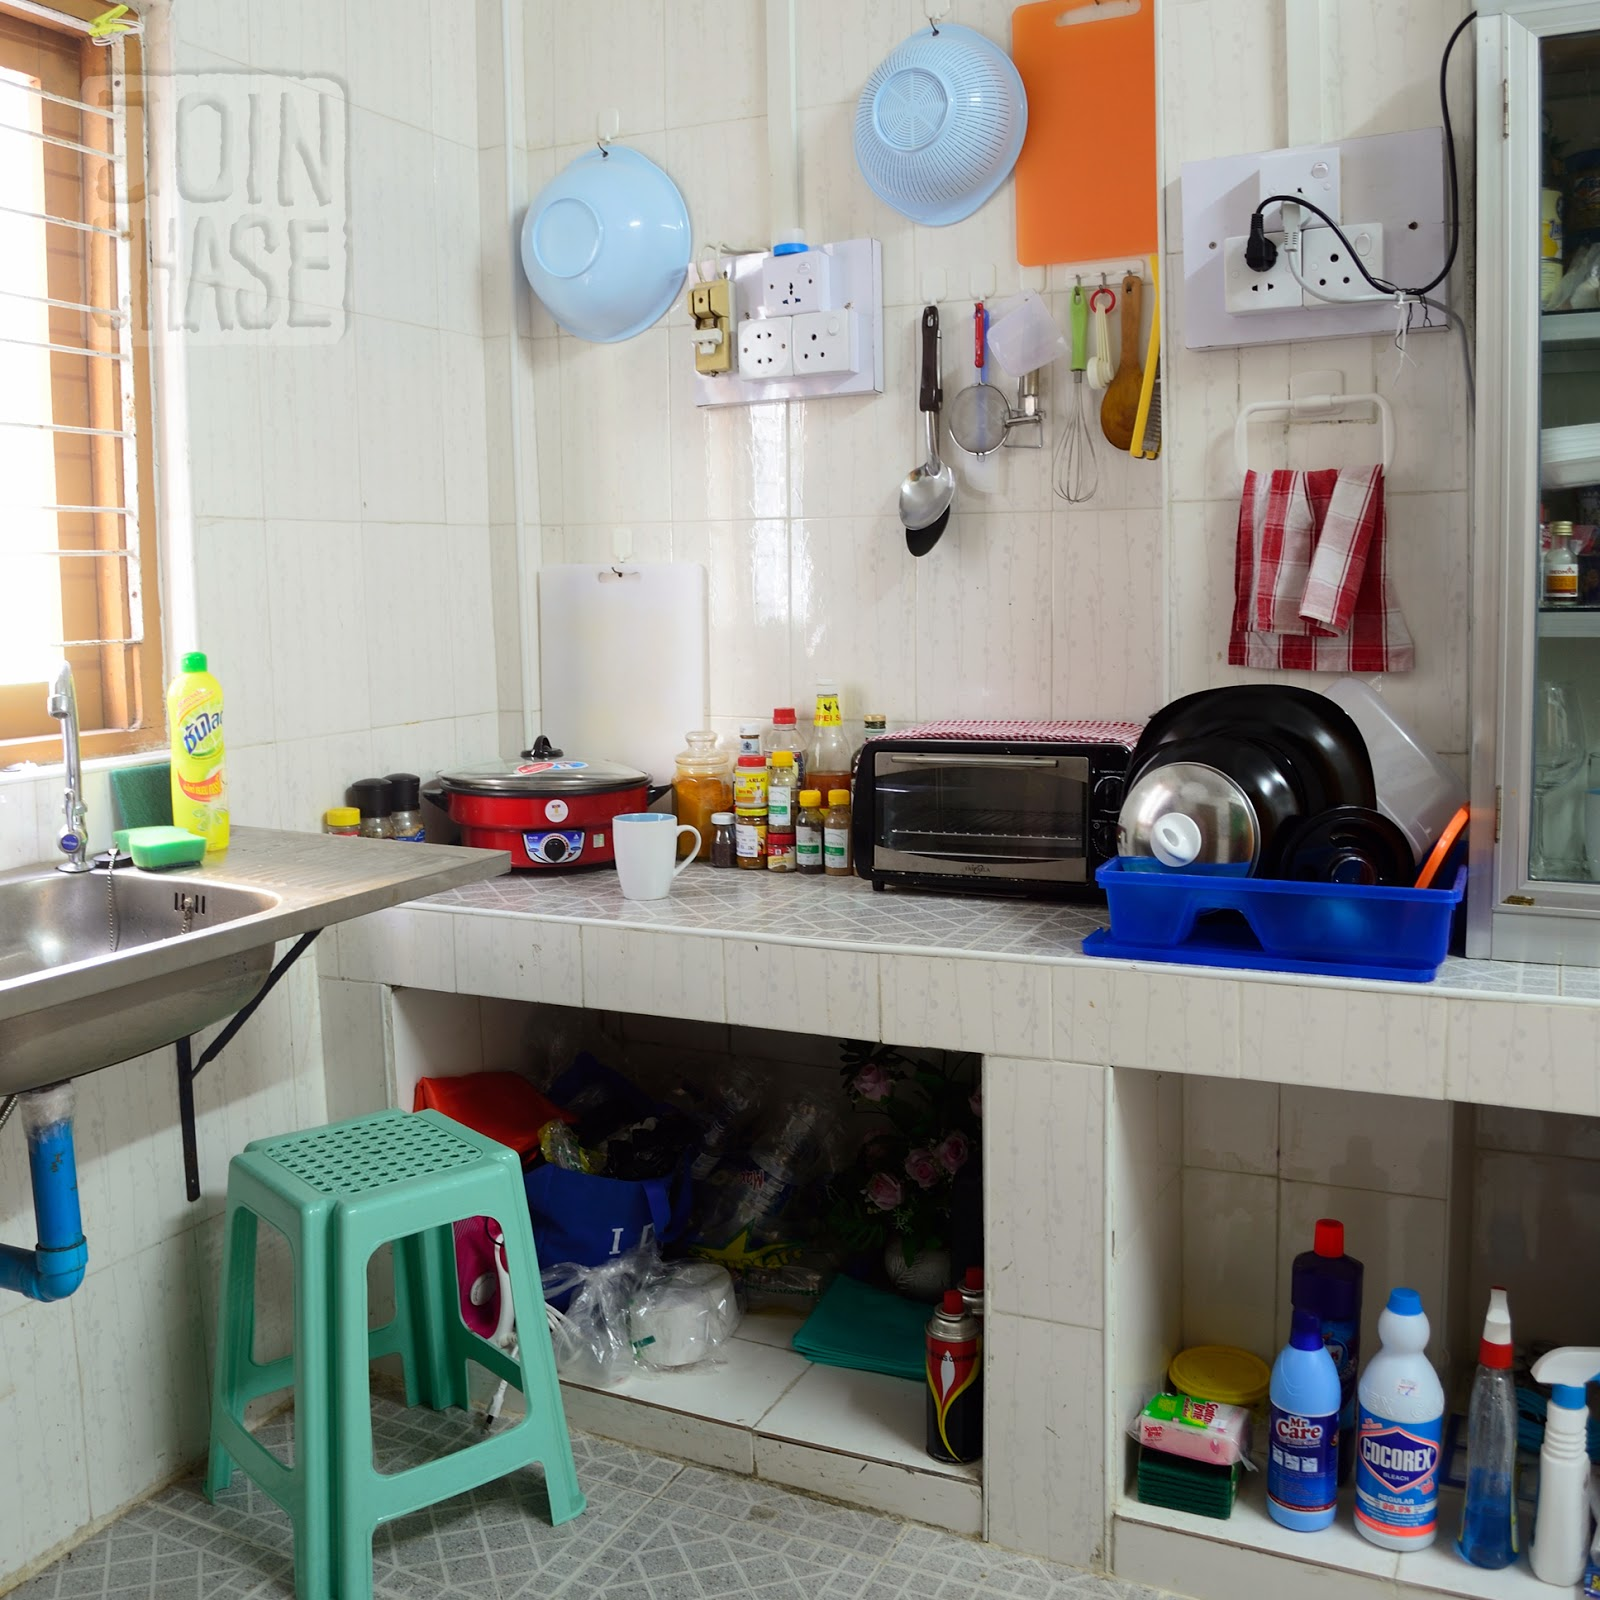 A typical kitchen in an apartment in Yangon, Myanmar.